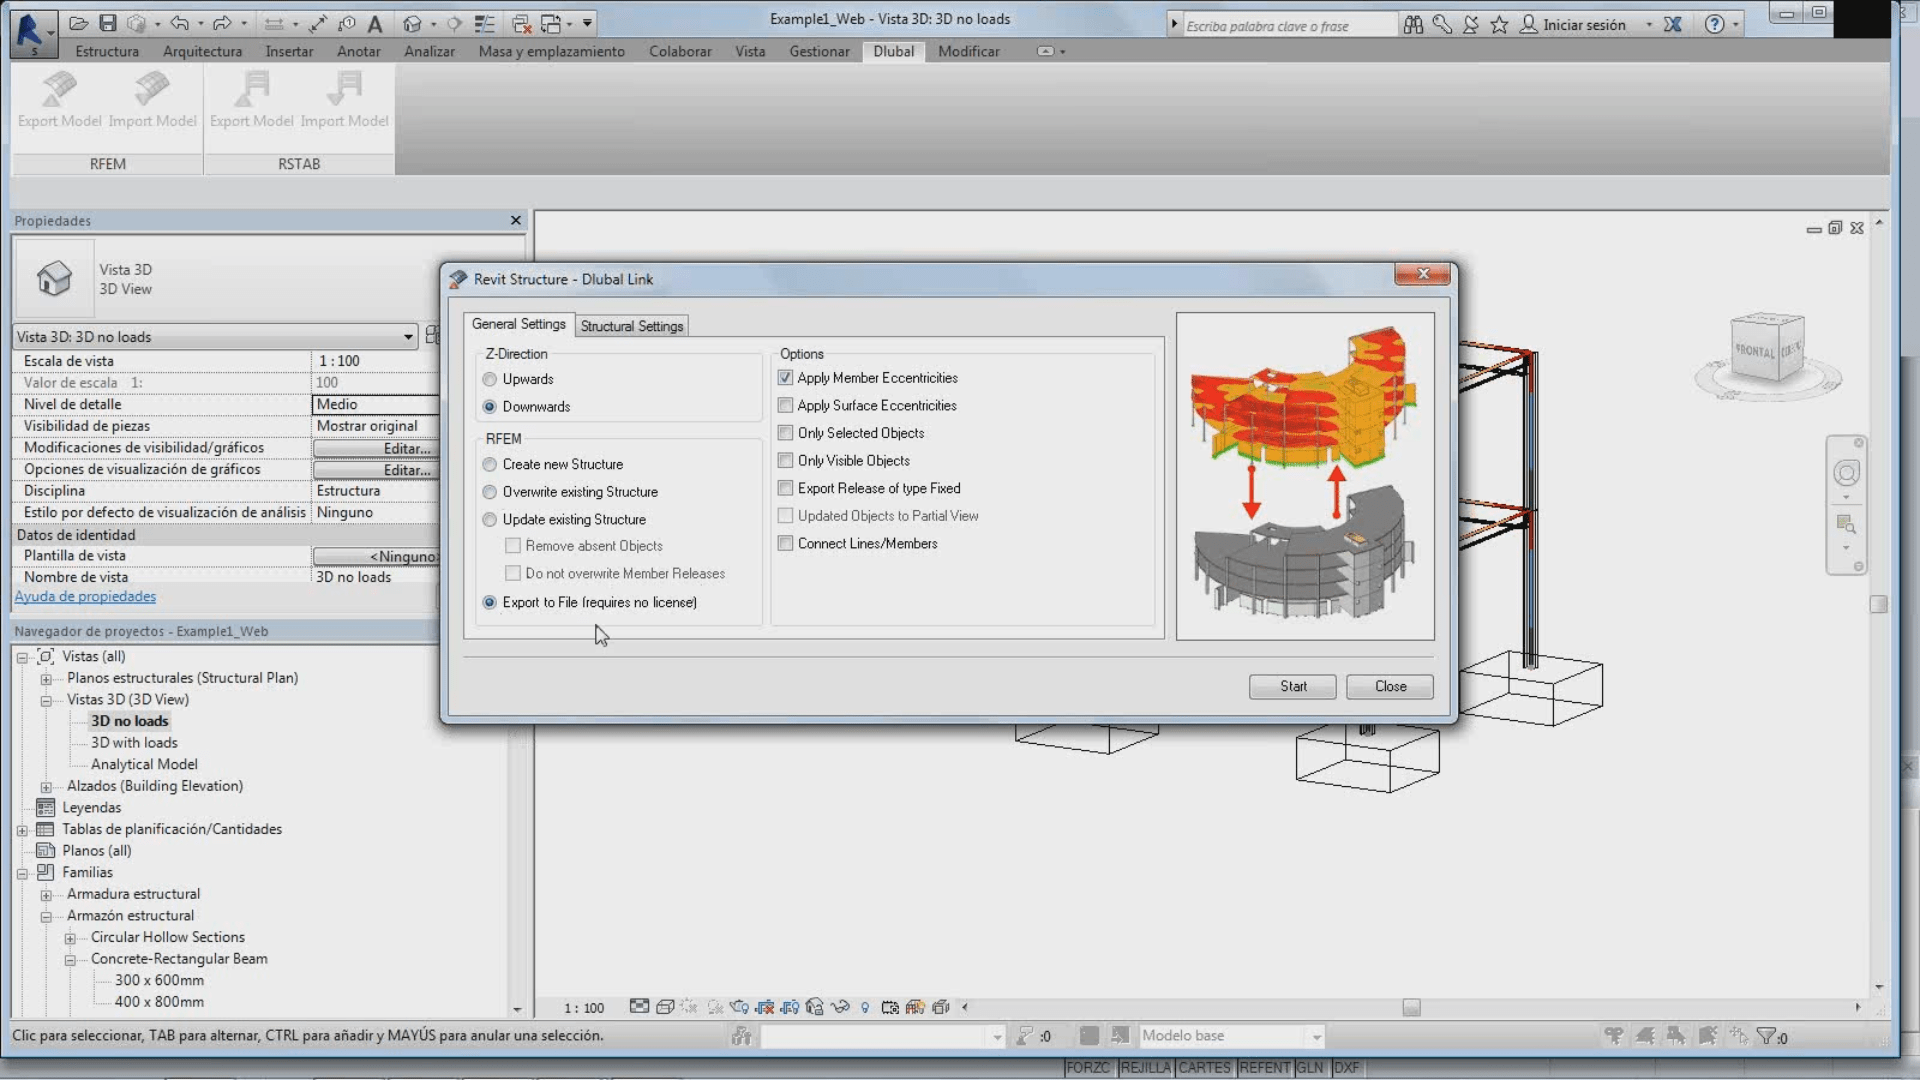 Intercambio de datos bidireccional con Revit Structure